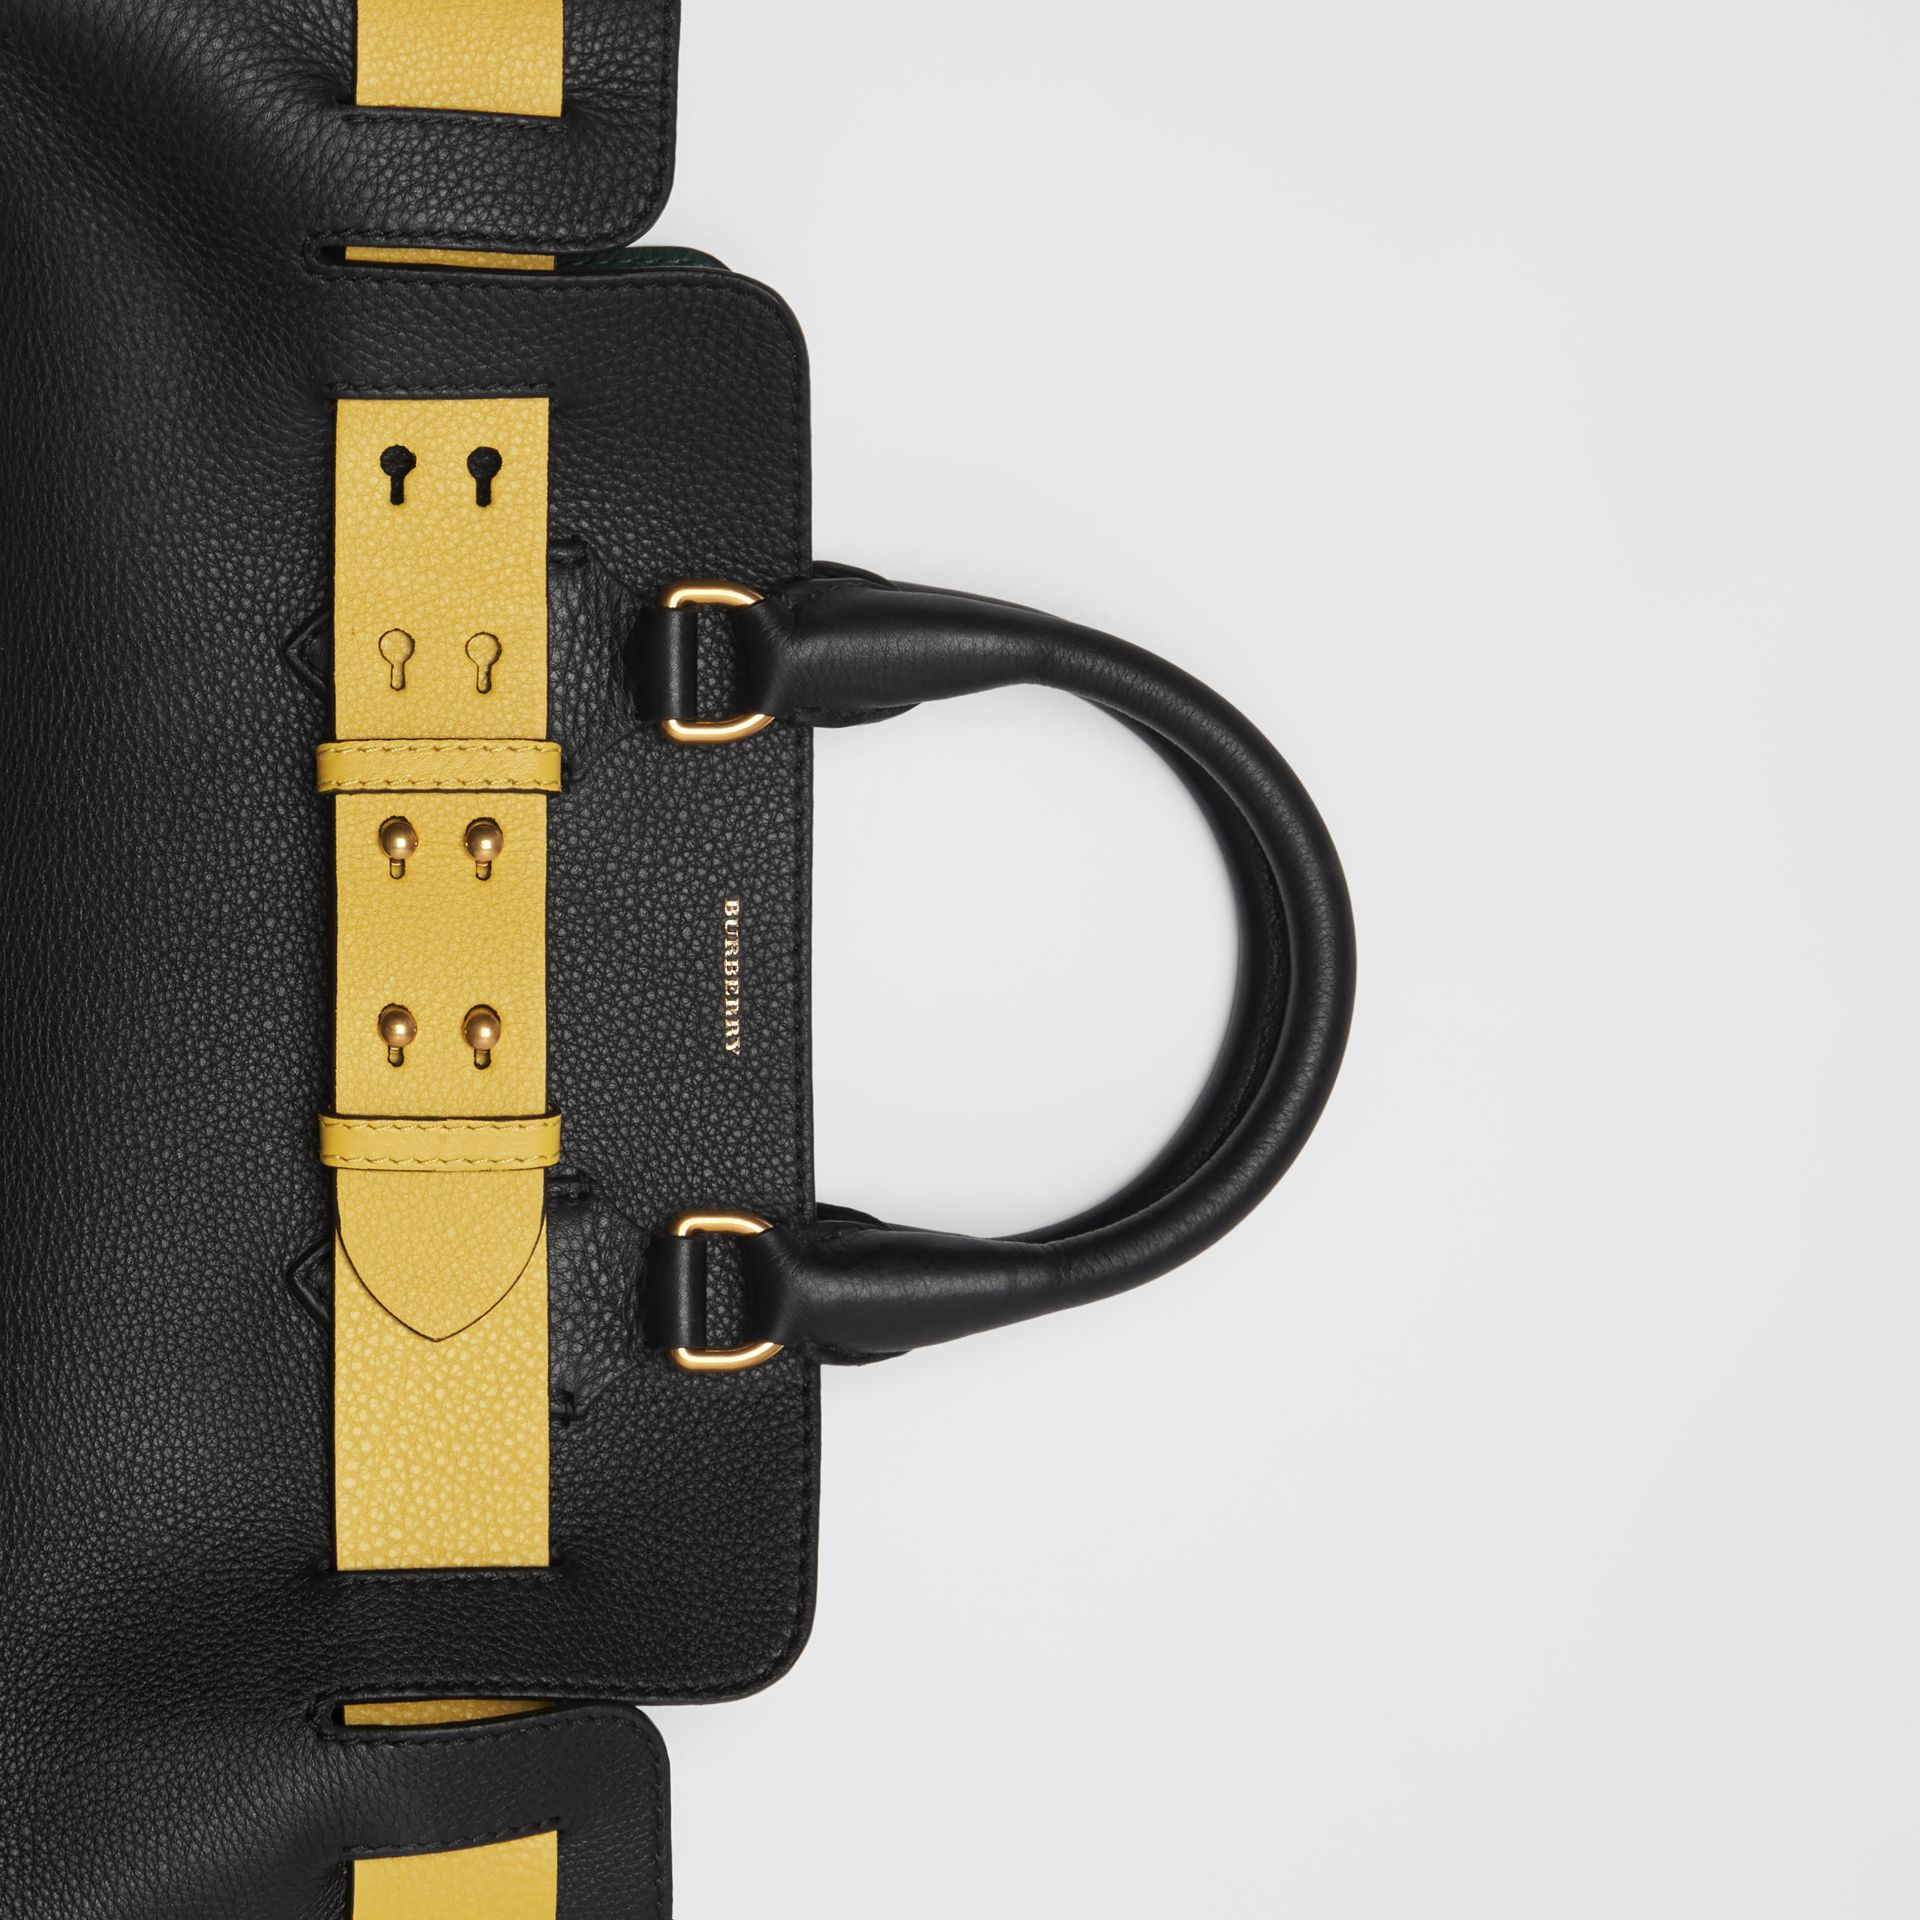 Petit sac The Belt en cuir (Noir/jaune) - Femme | Burberry - photo de la galerie 1